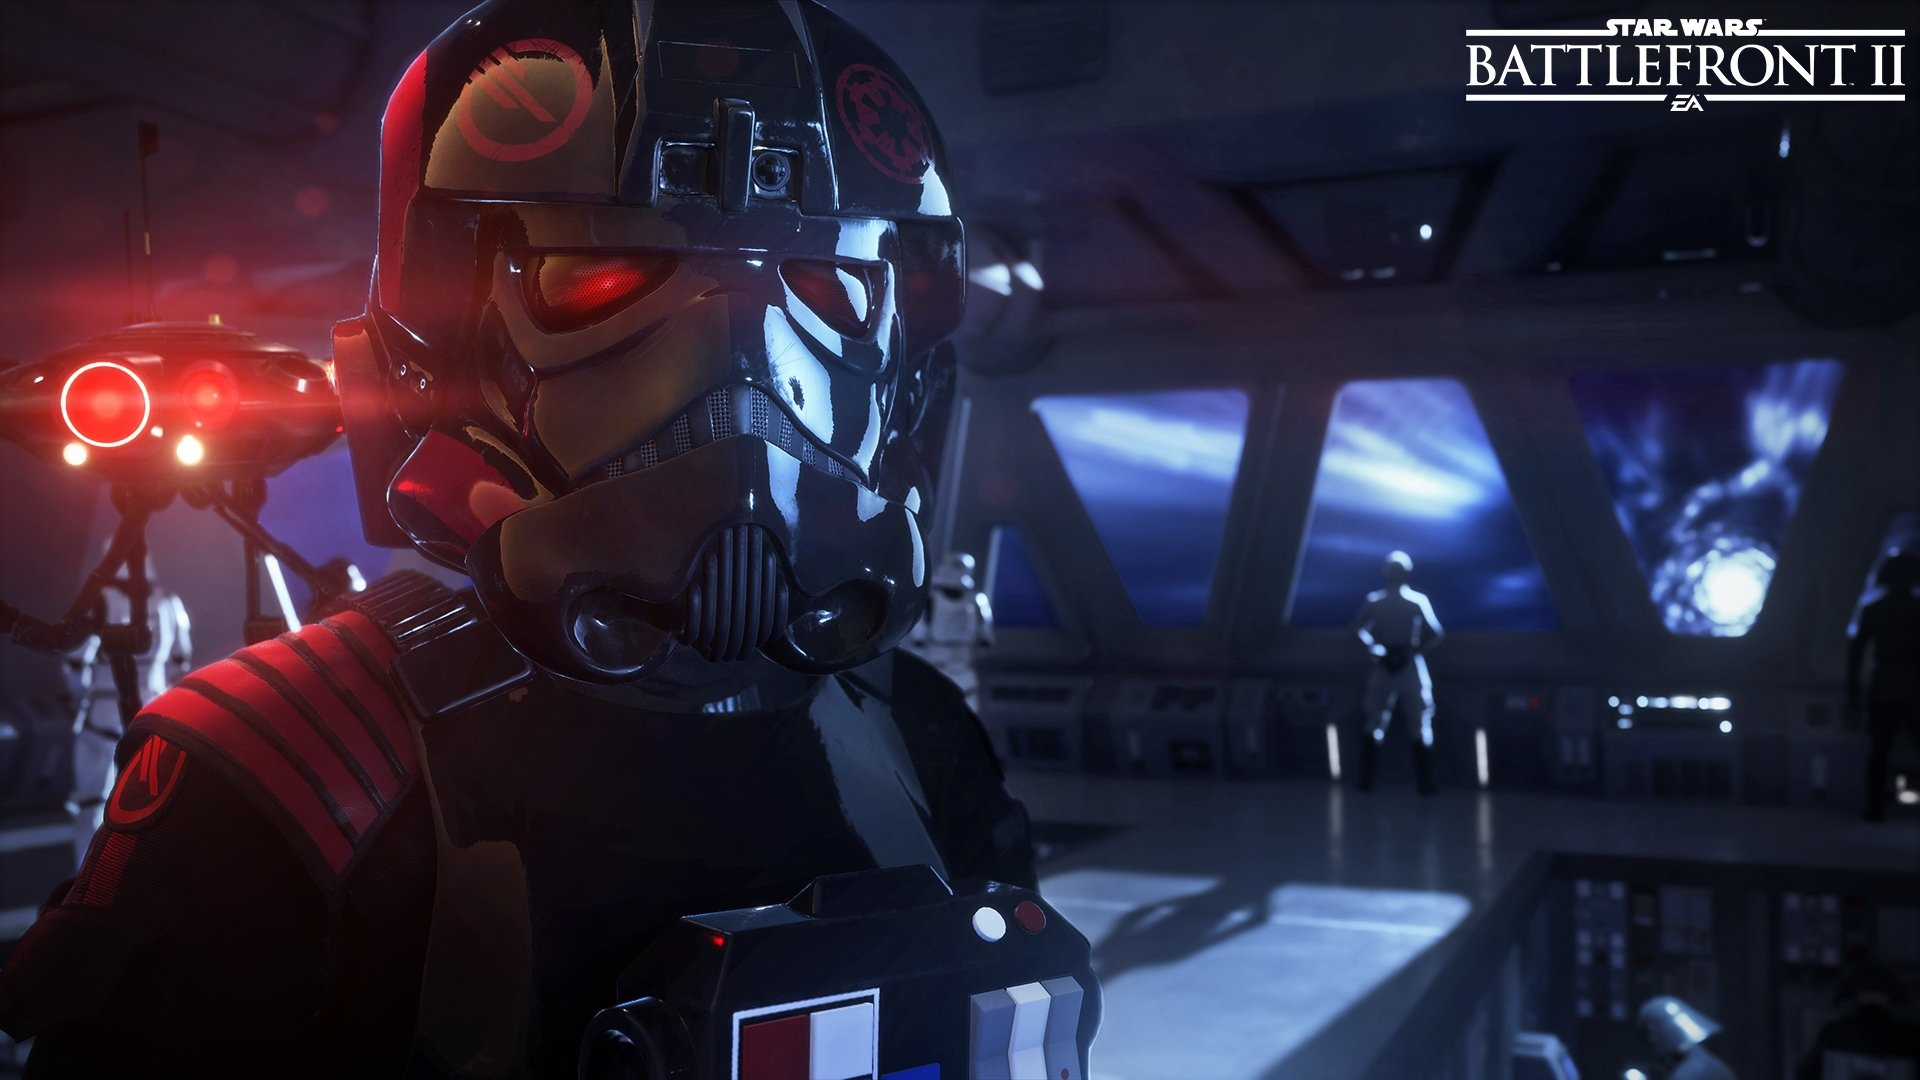 save star wars battlefront ii hd wallpapers | playstation, xbox